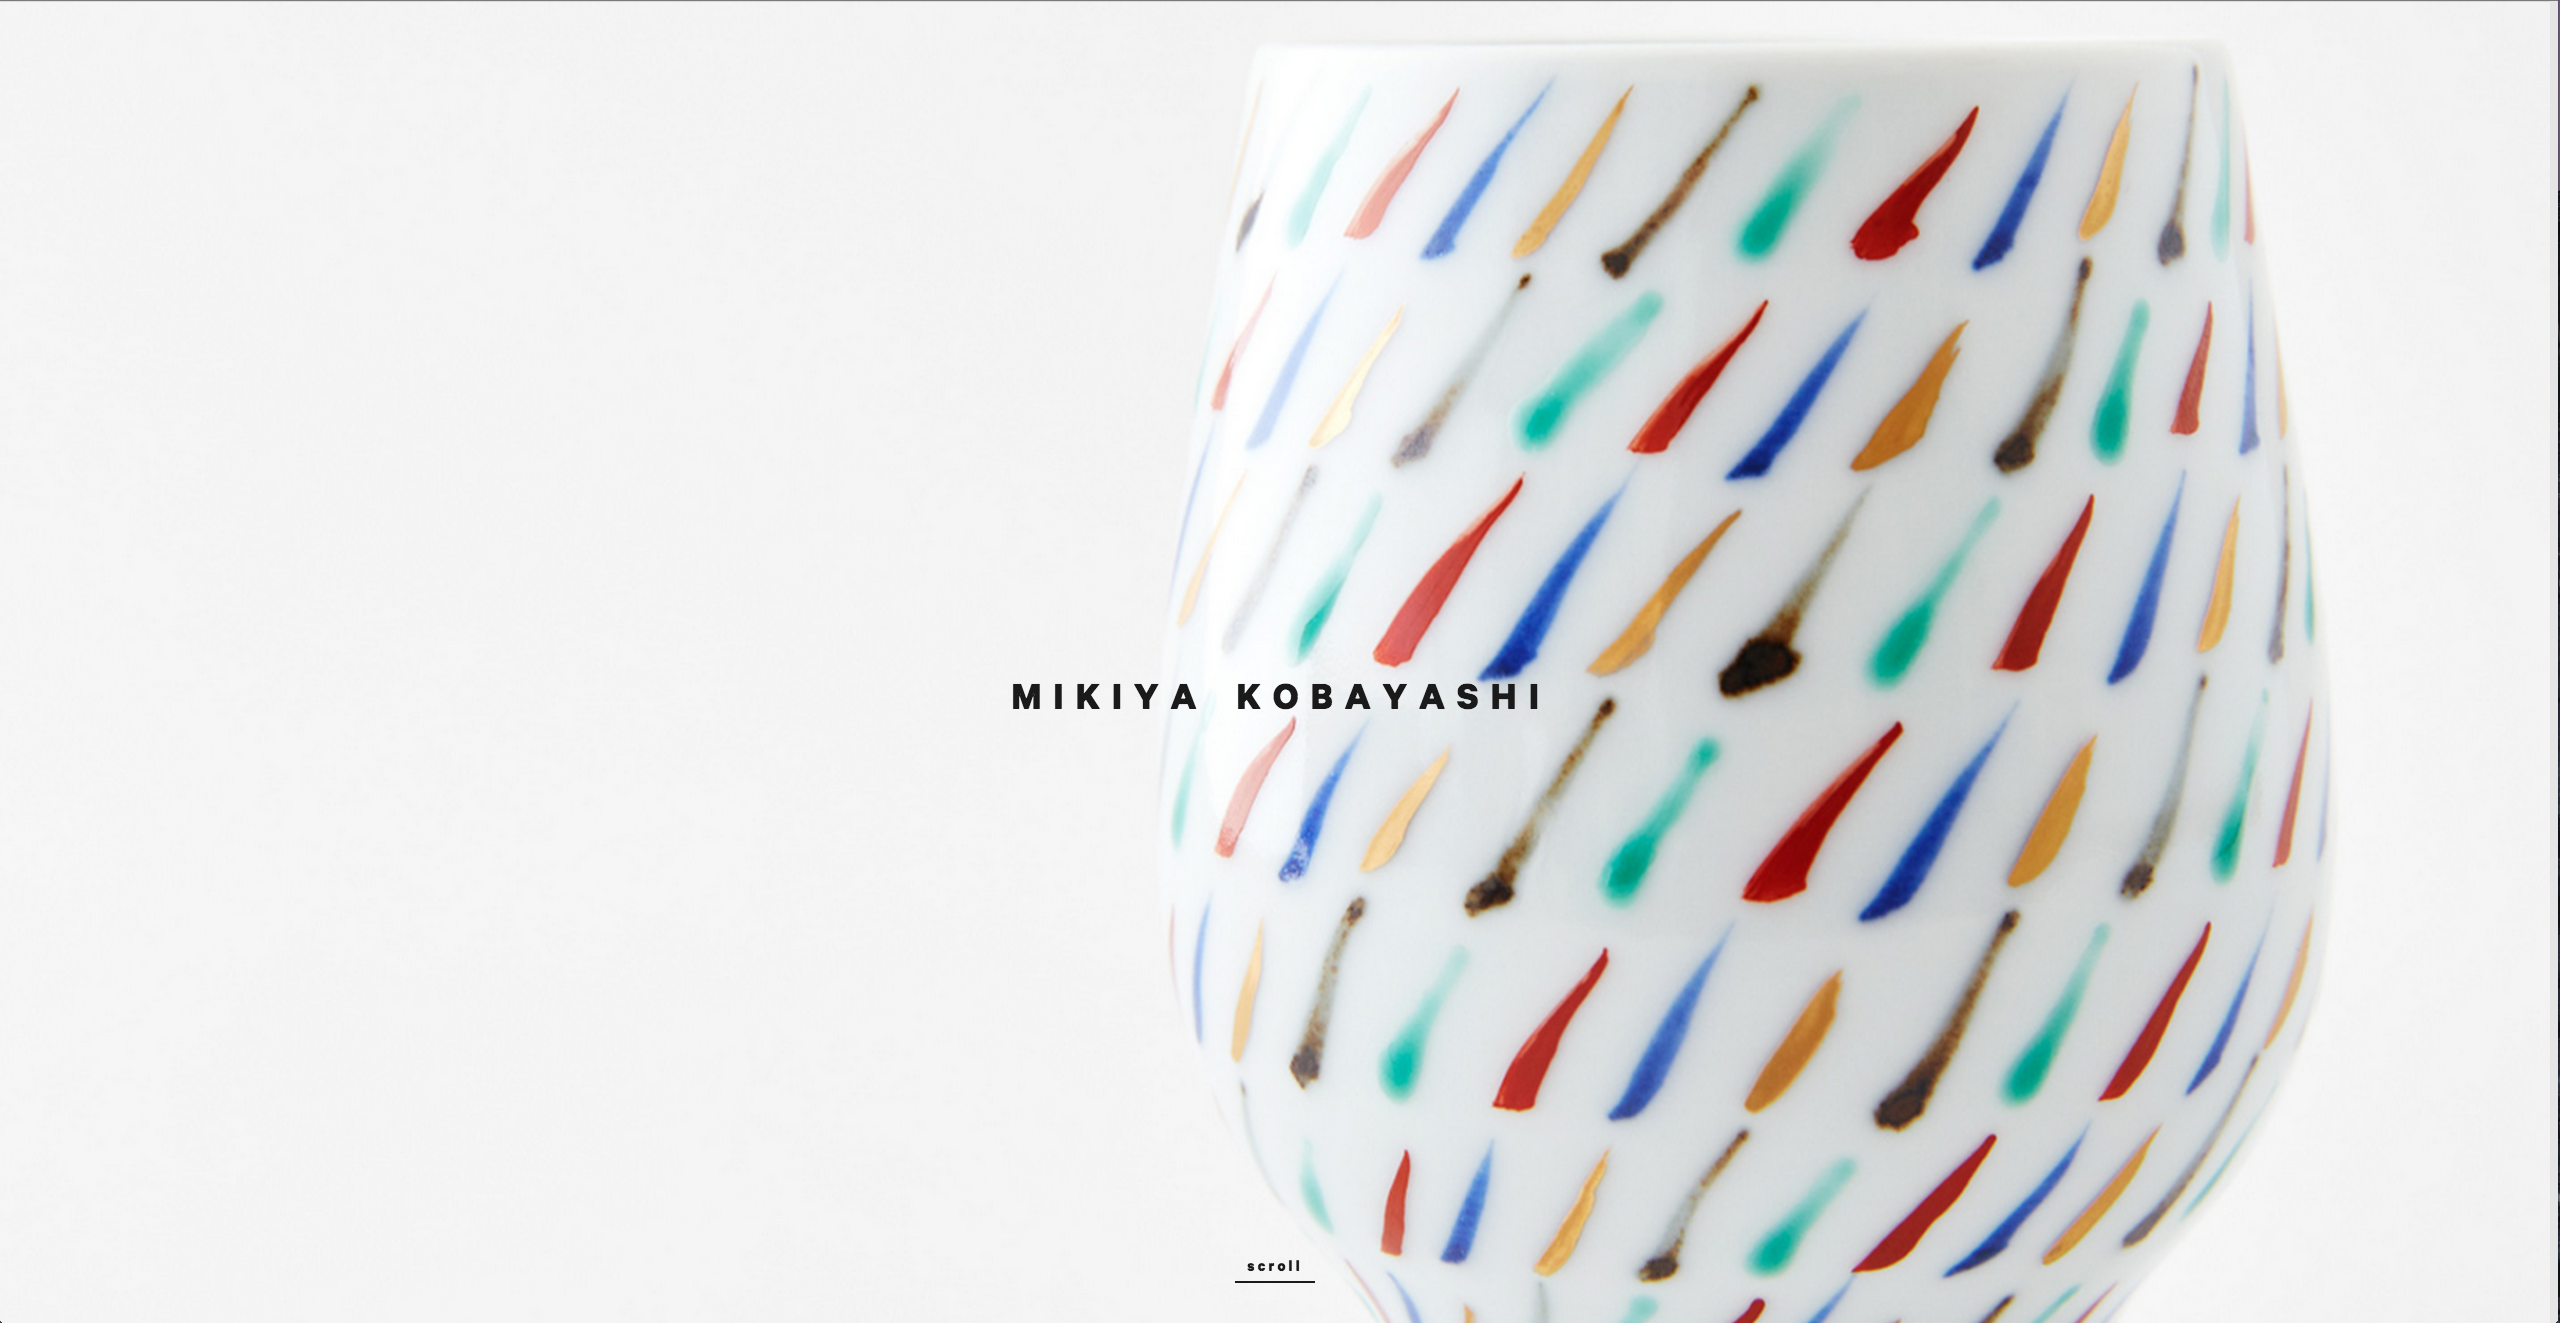 Homepage of Mikiya Kobayashi, an award-winning website